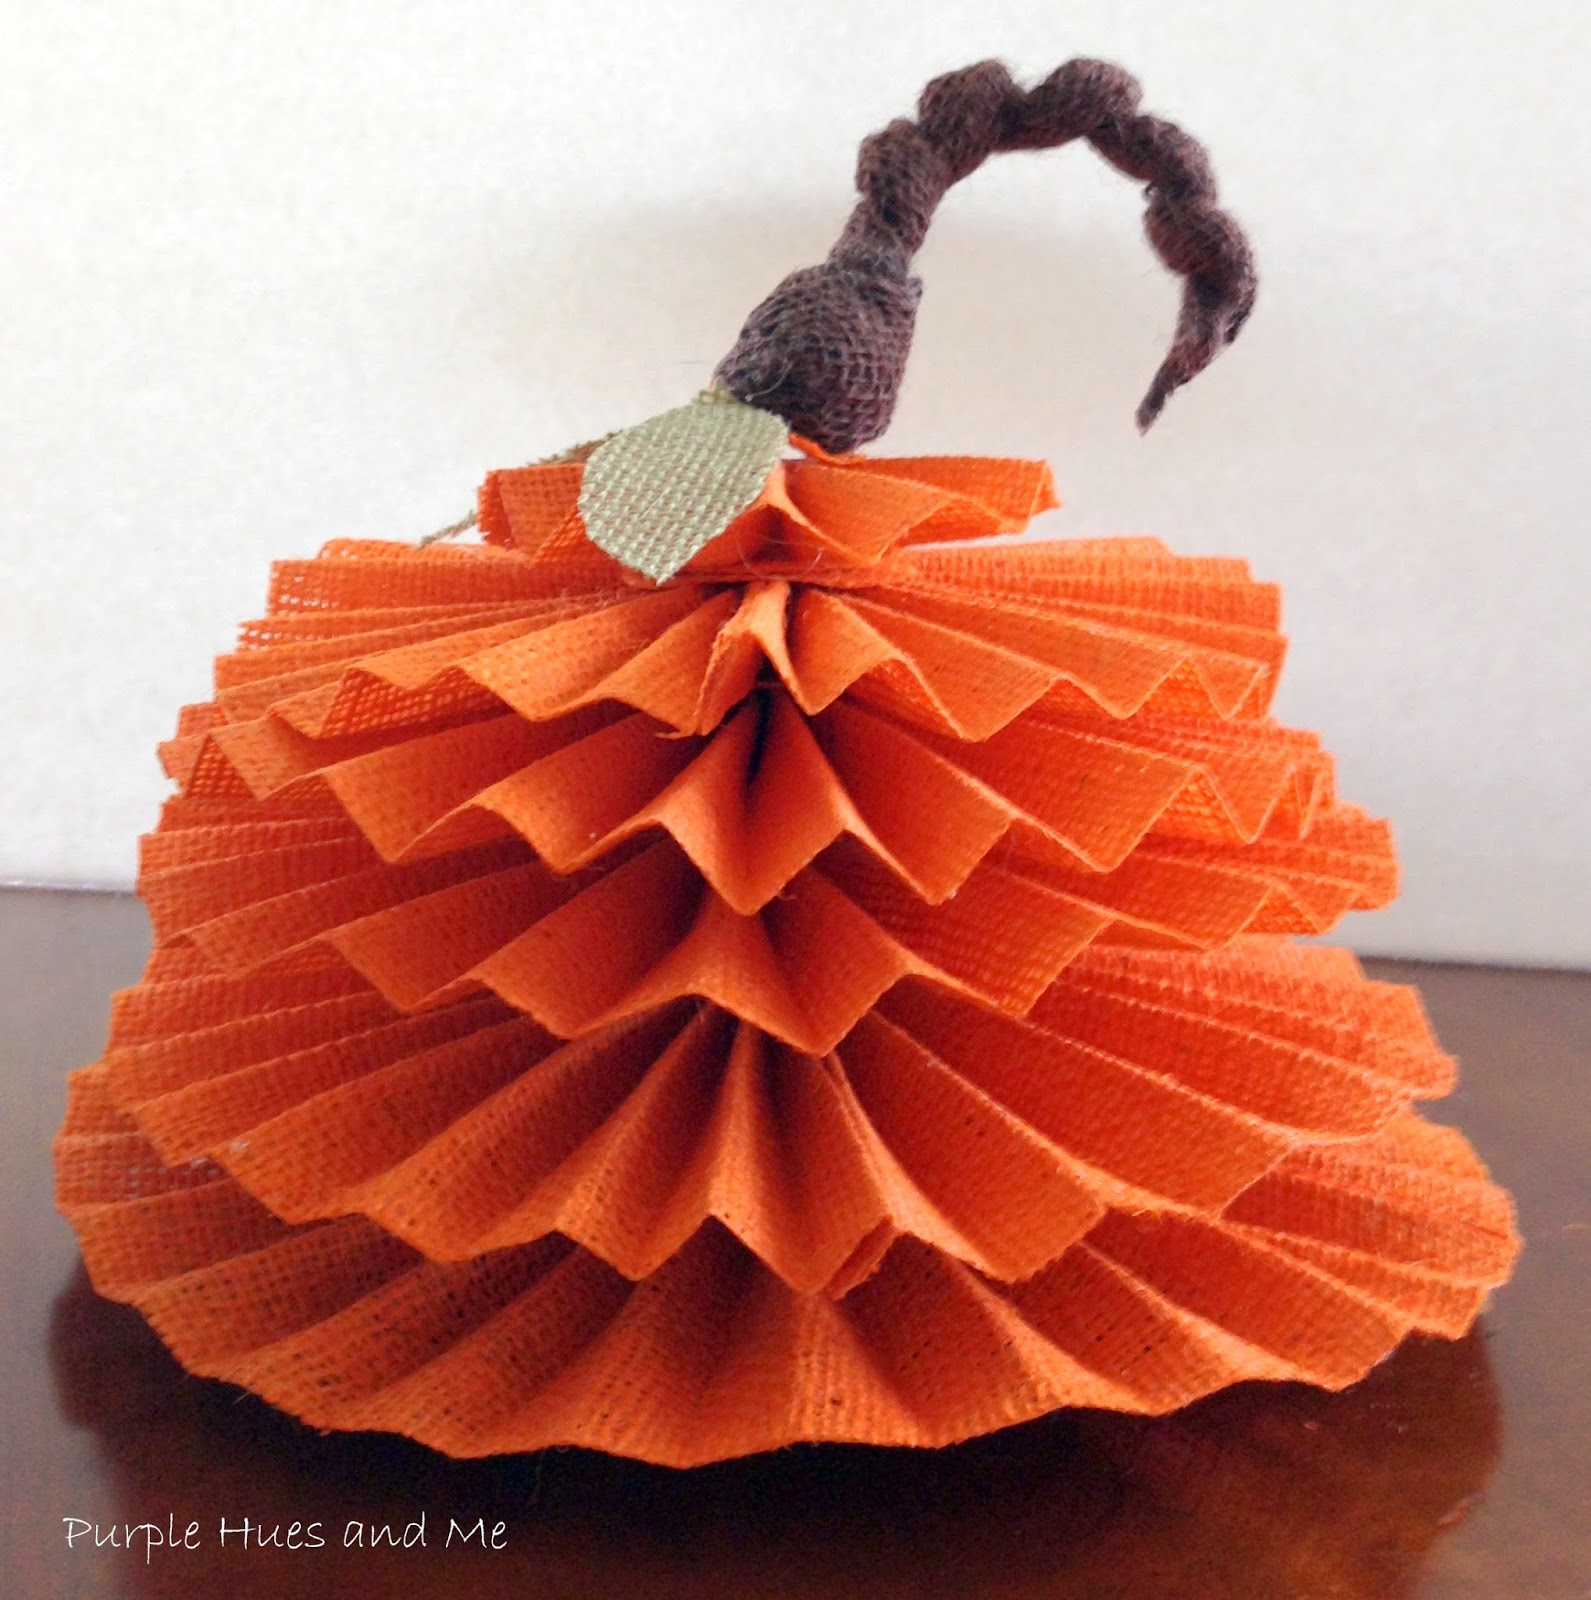 http://plumperfectandme.blogspot.com/2014/09/burlap-accordian-pumpkin.html